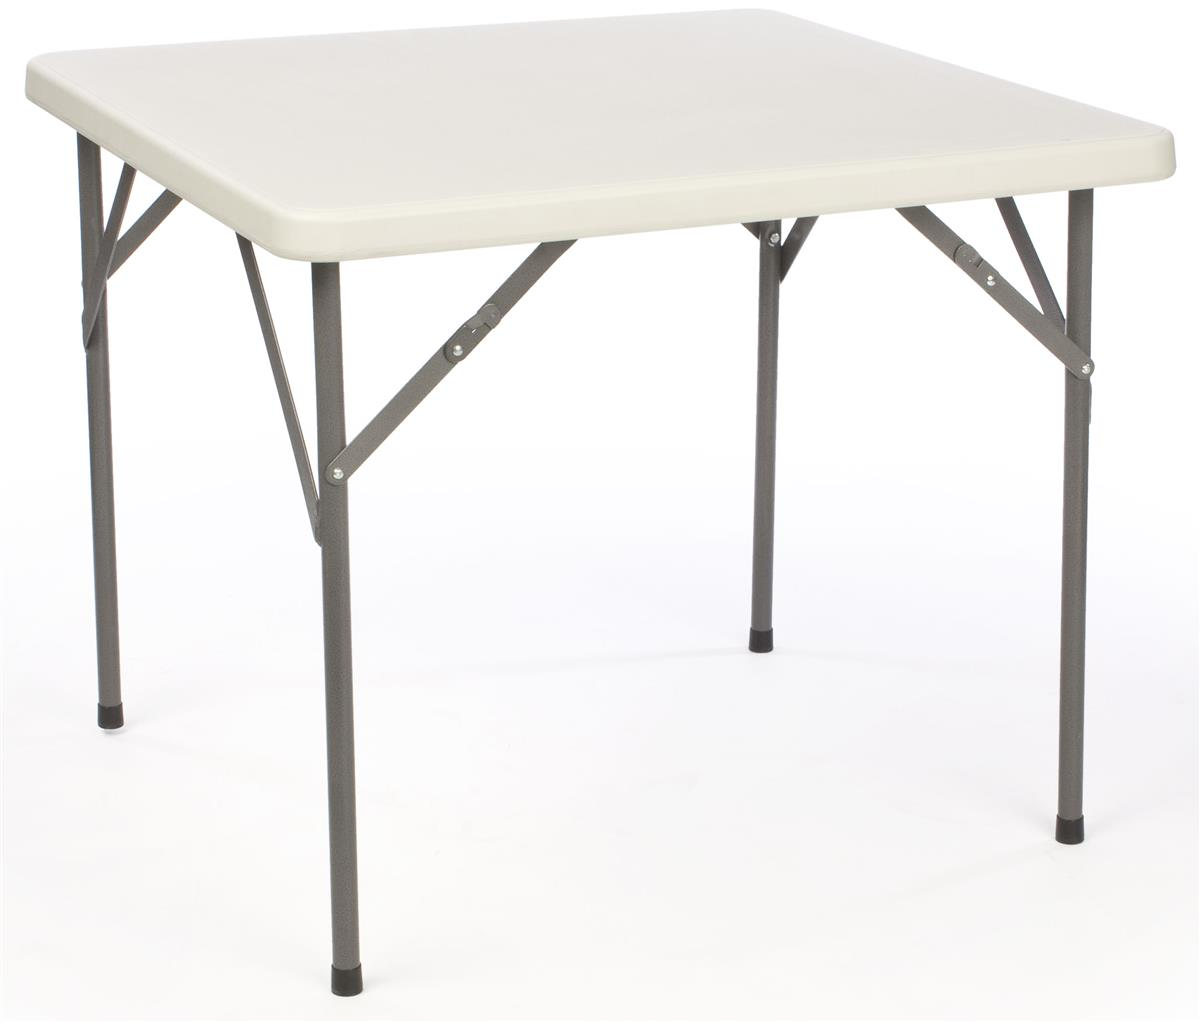 Folding Table Square Folding Card Table Plastic Top With Folding Legs